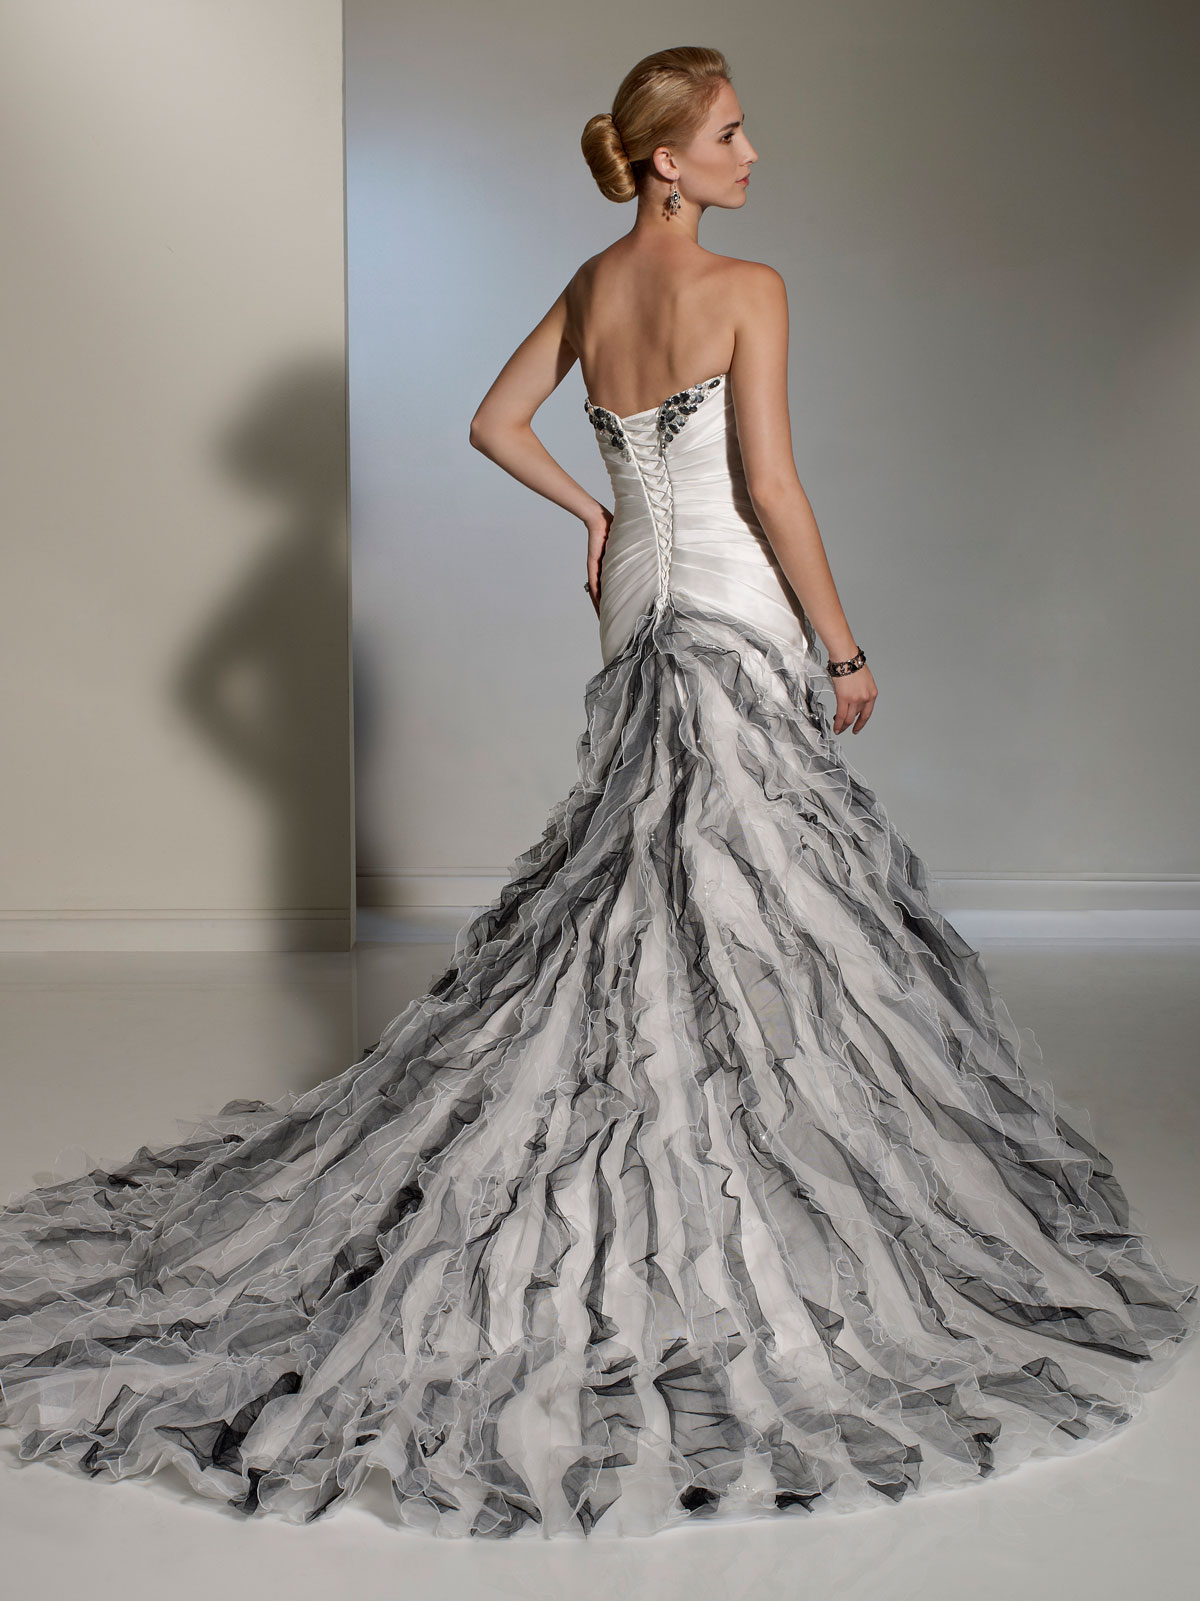 White And Silver Gown & Always In Fashion For All Occasions